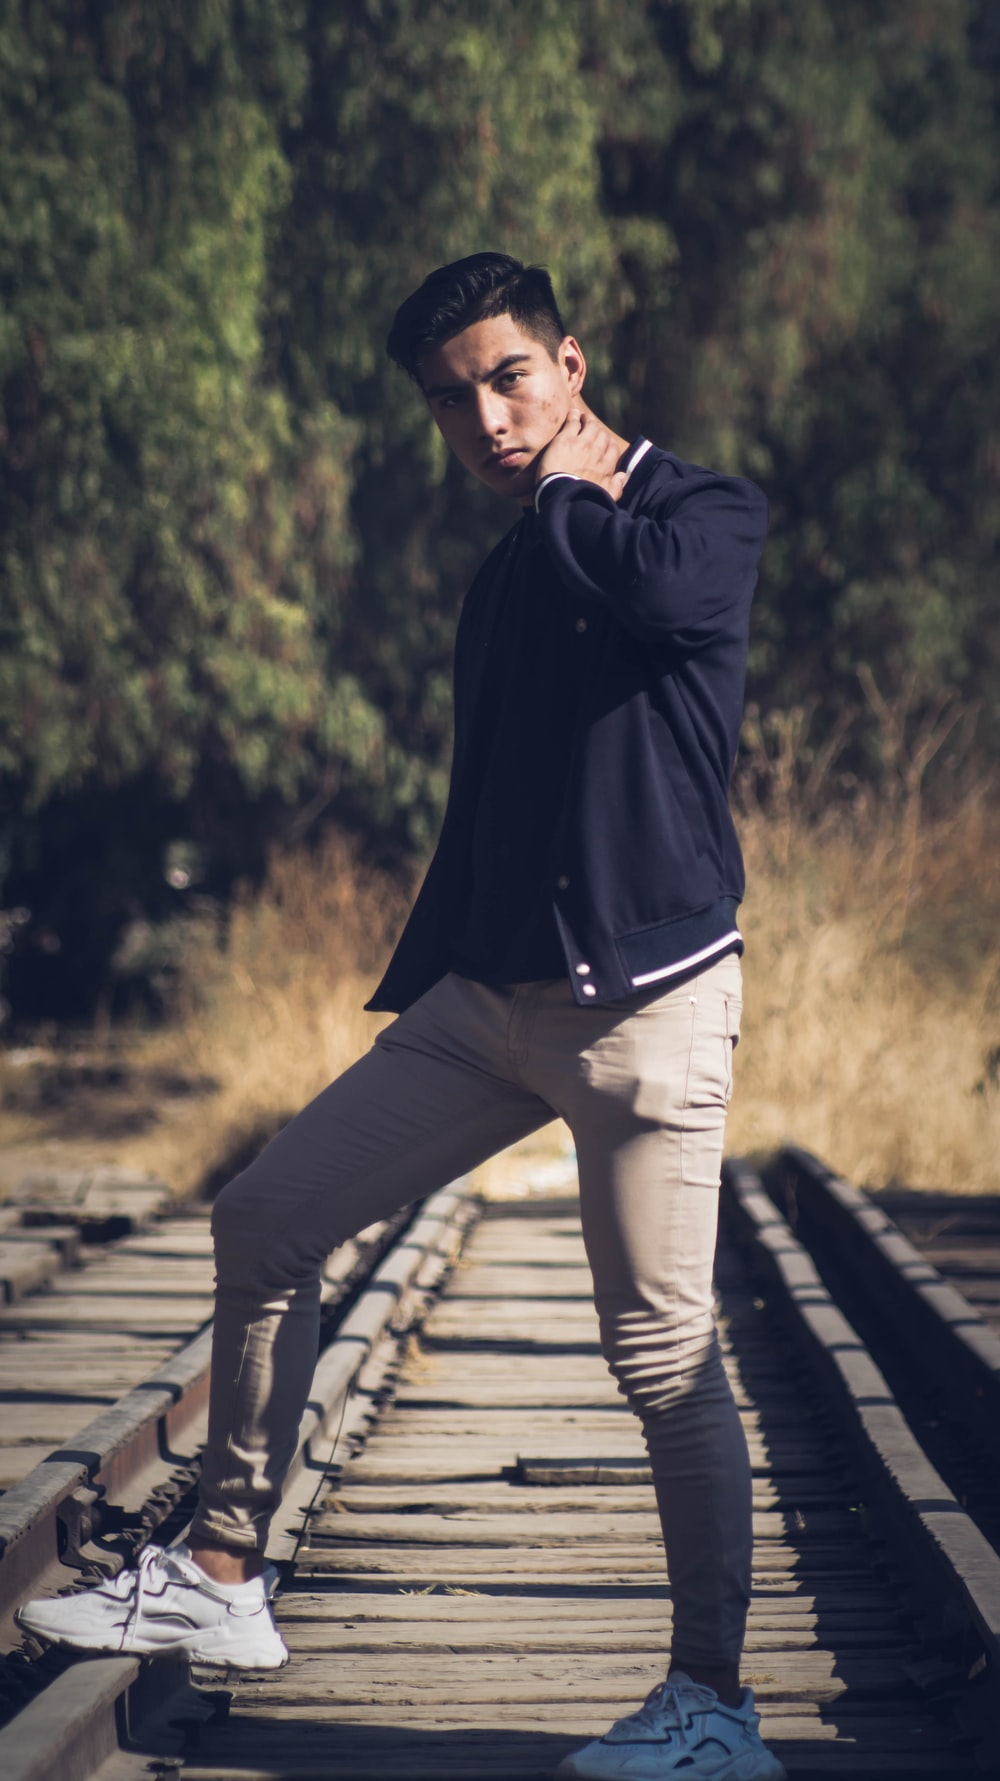 man in black jacket and white pants standing on wooden pathway during daytime